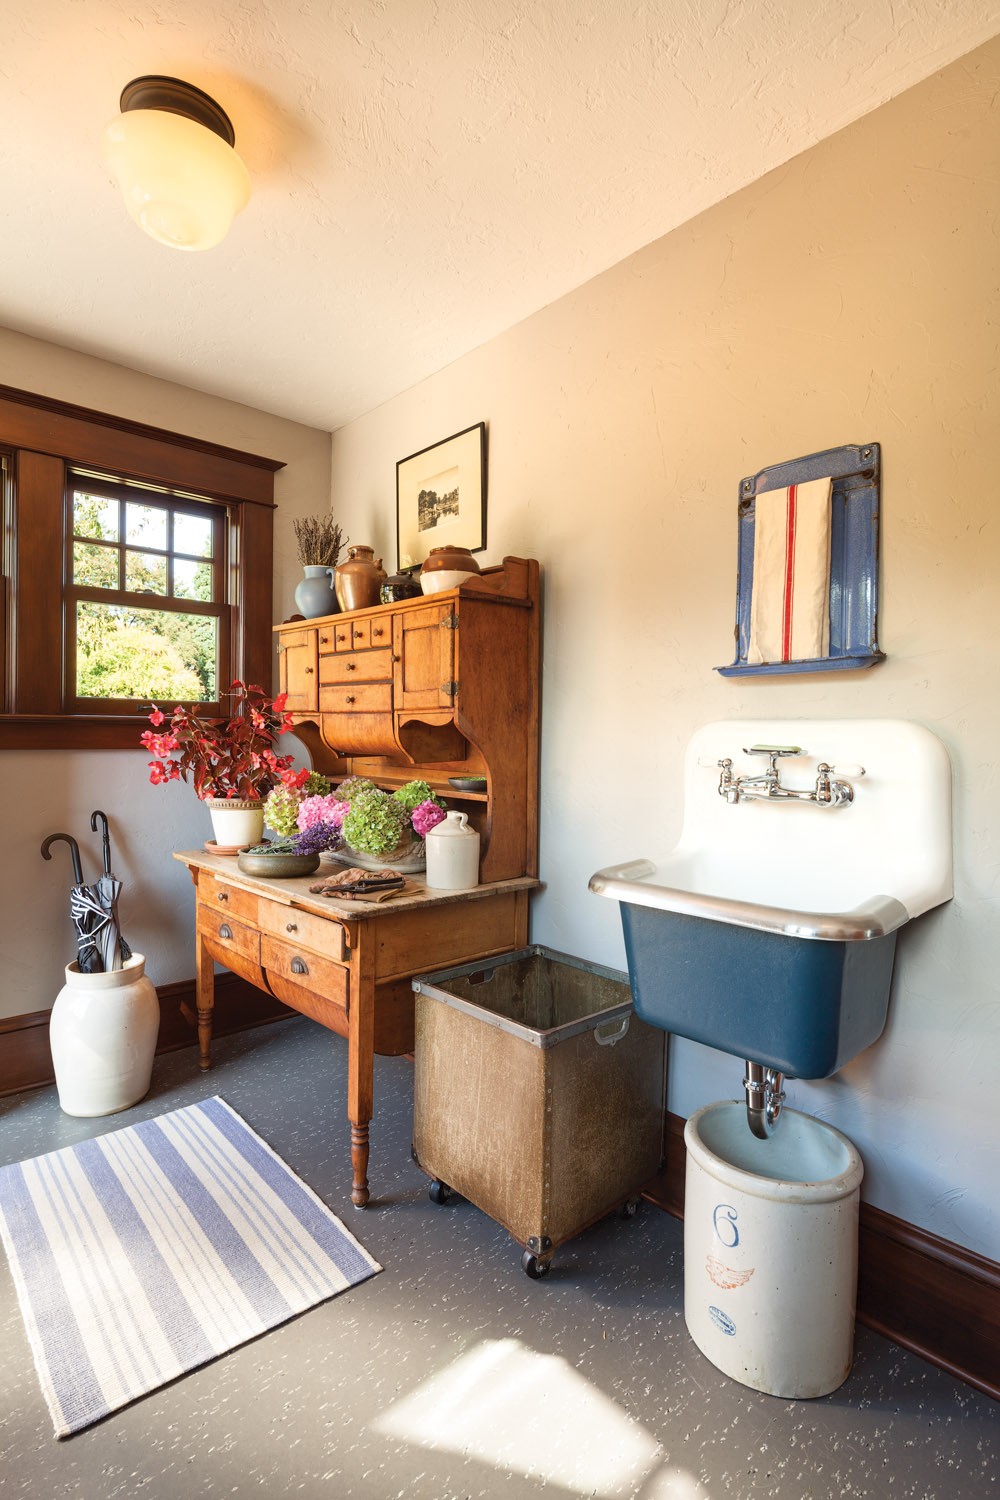 The original mudroom in a rural bungalow is again functional with the addition of an antique baker's cabinet and a vintage sink.